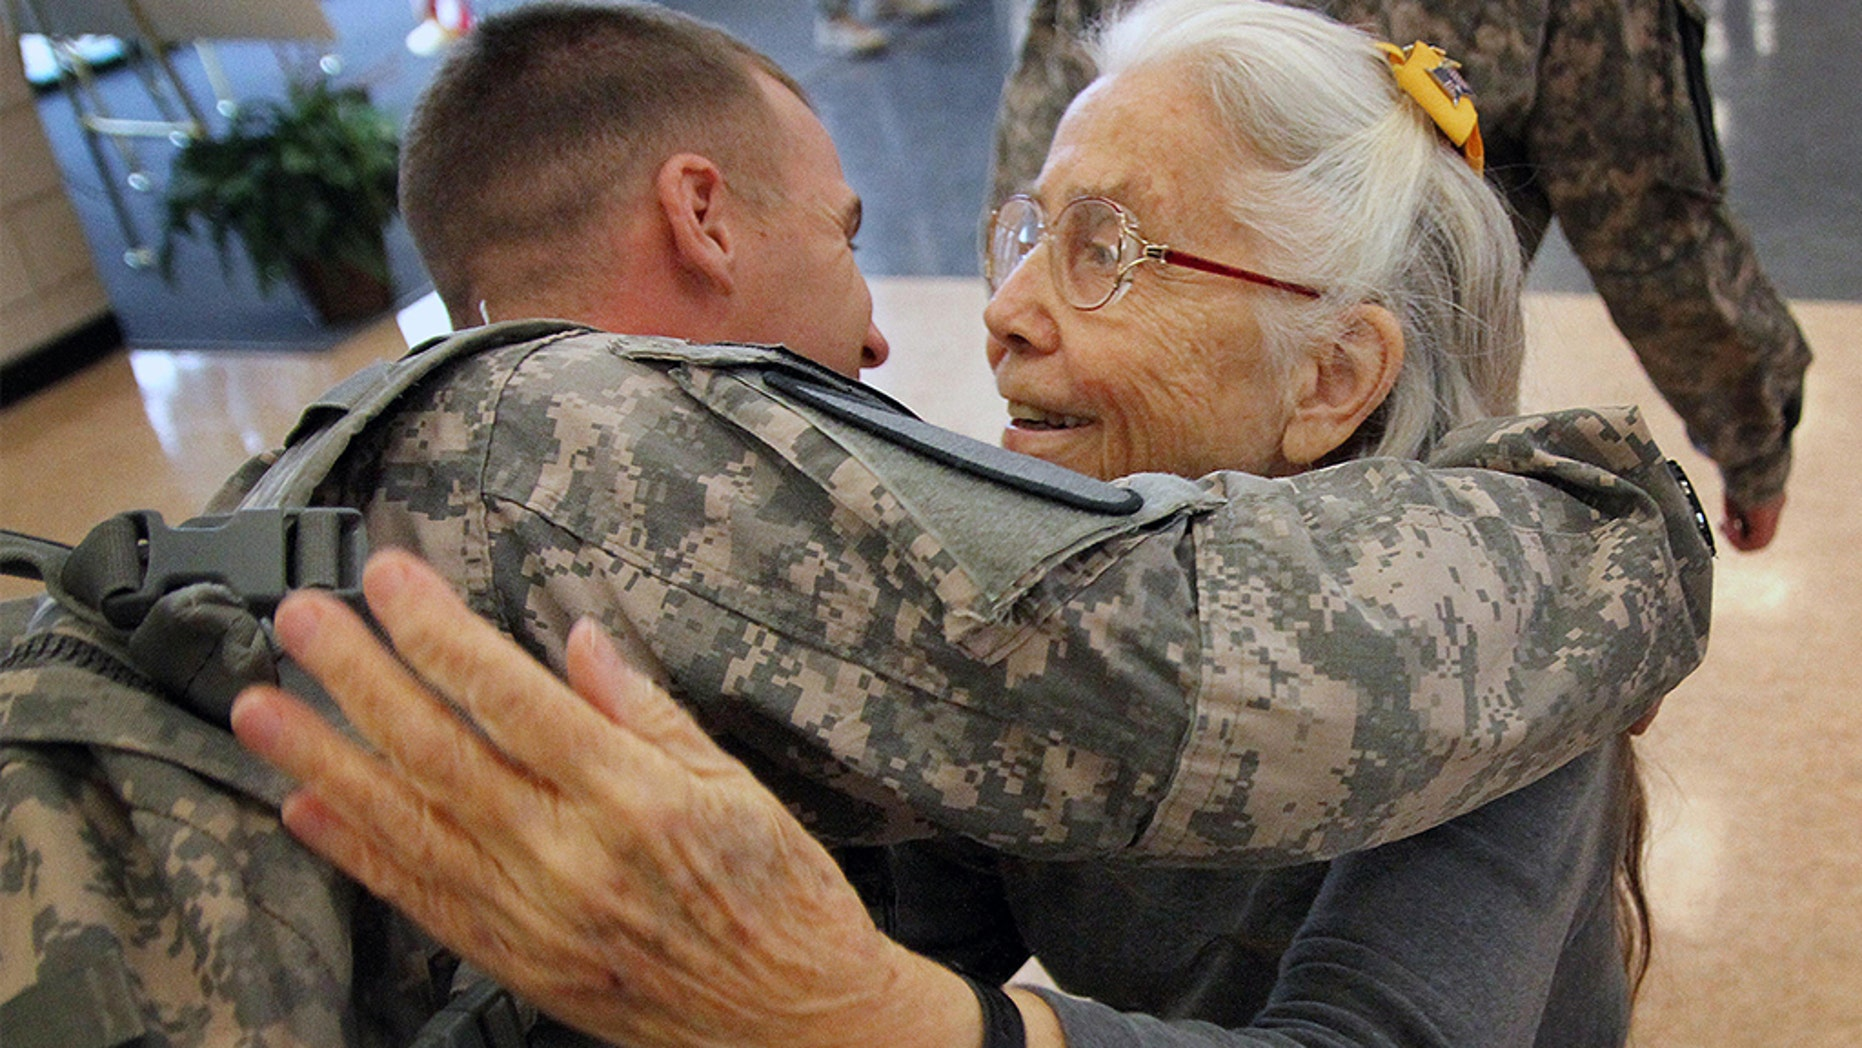 Westlake Legal Group Elizabeth-Laird-Hug-Lady-AP Petition calling for terminal to be named after Fort Hood's 'hug lady' gains steam Frank Miles fox-news/us/personal-freedoms/proud-american fox news fnc/us fnc f42a8ac0-5127-5b20-b083-3471e50b7aa5 article